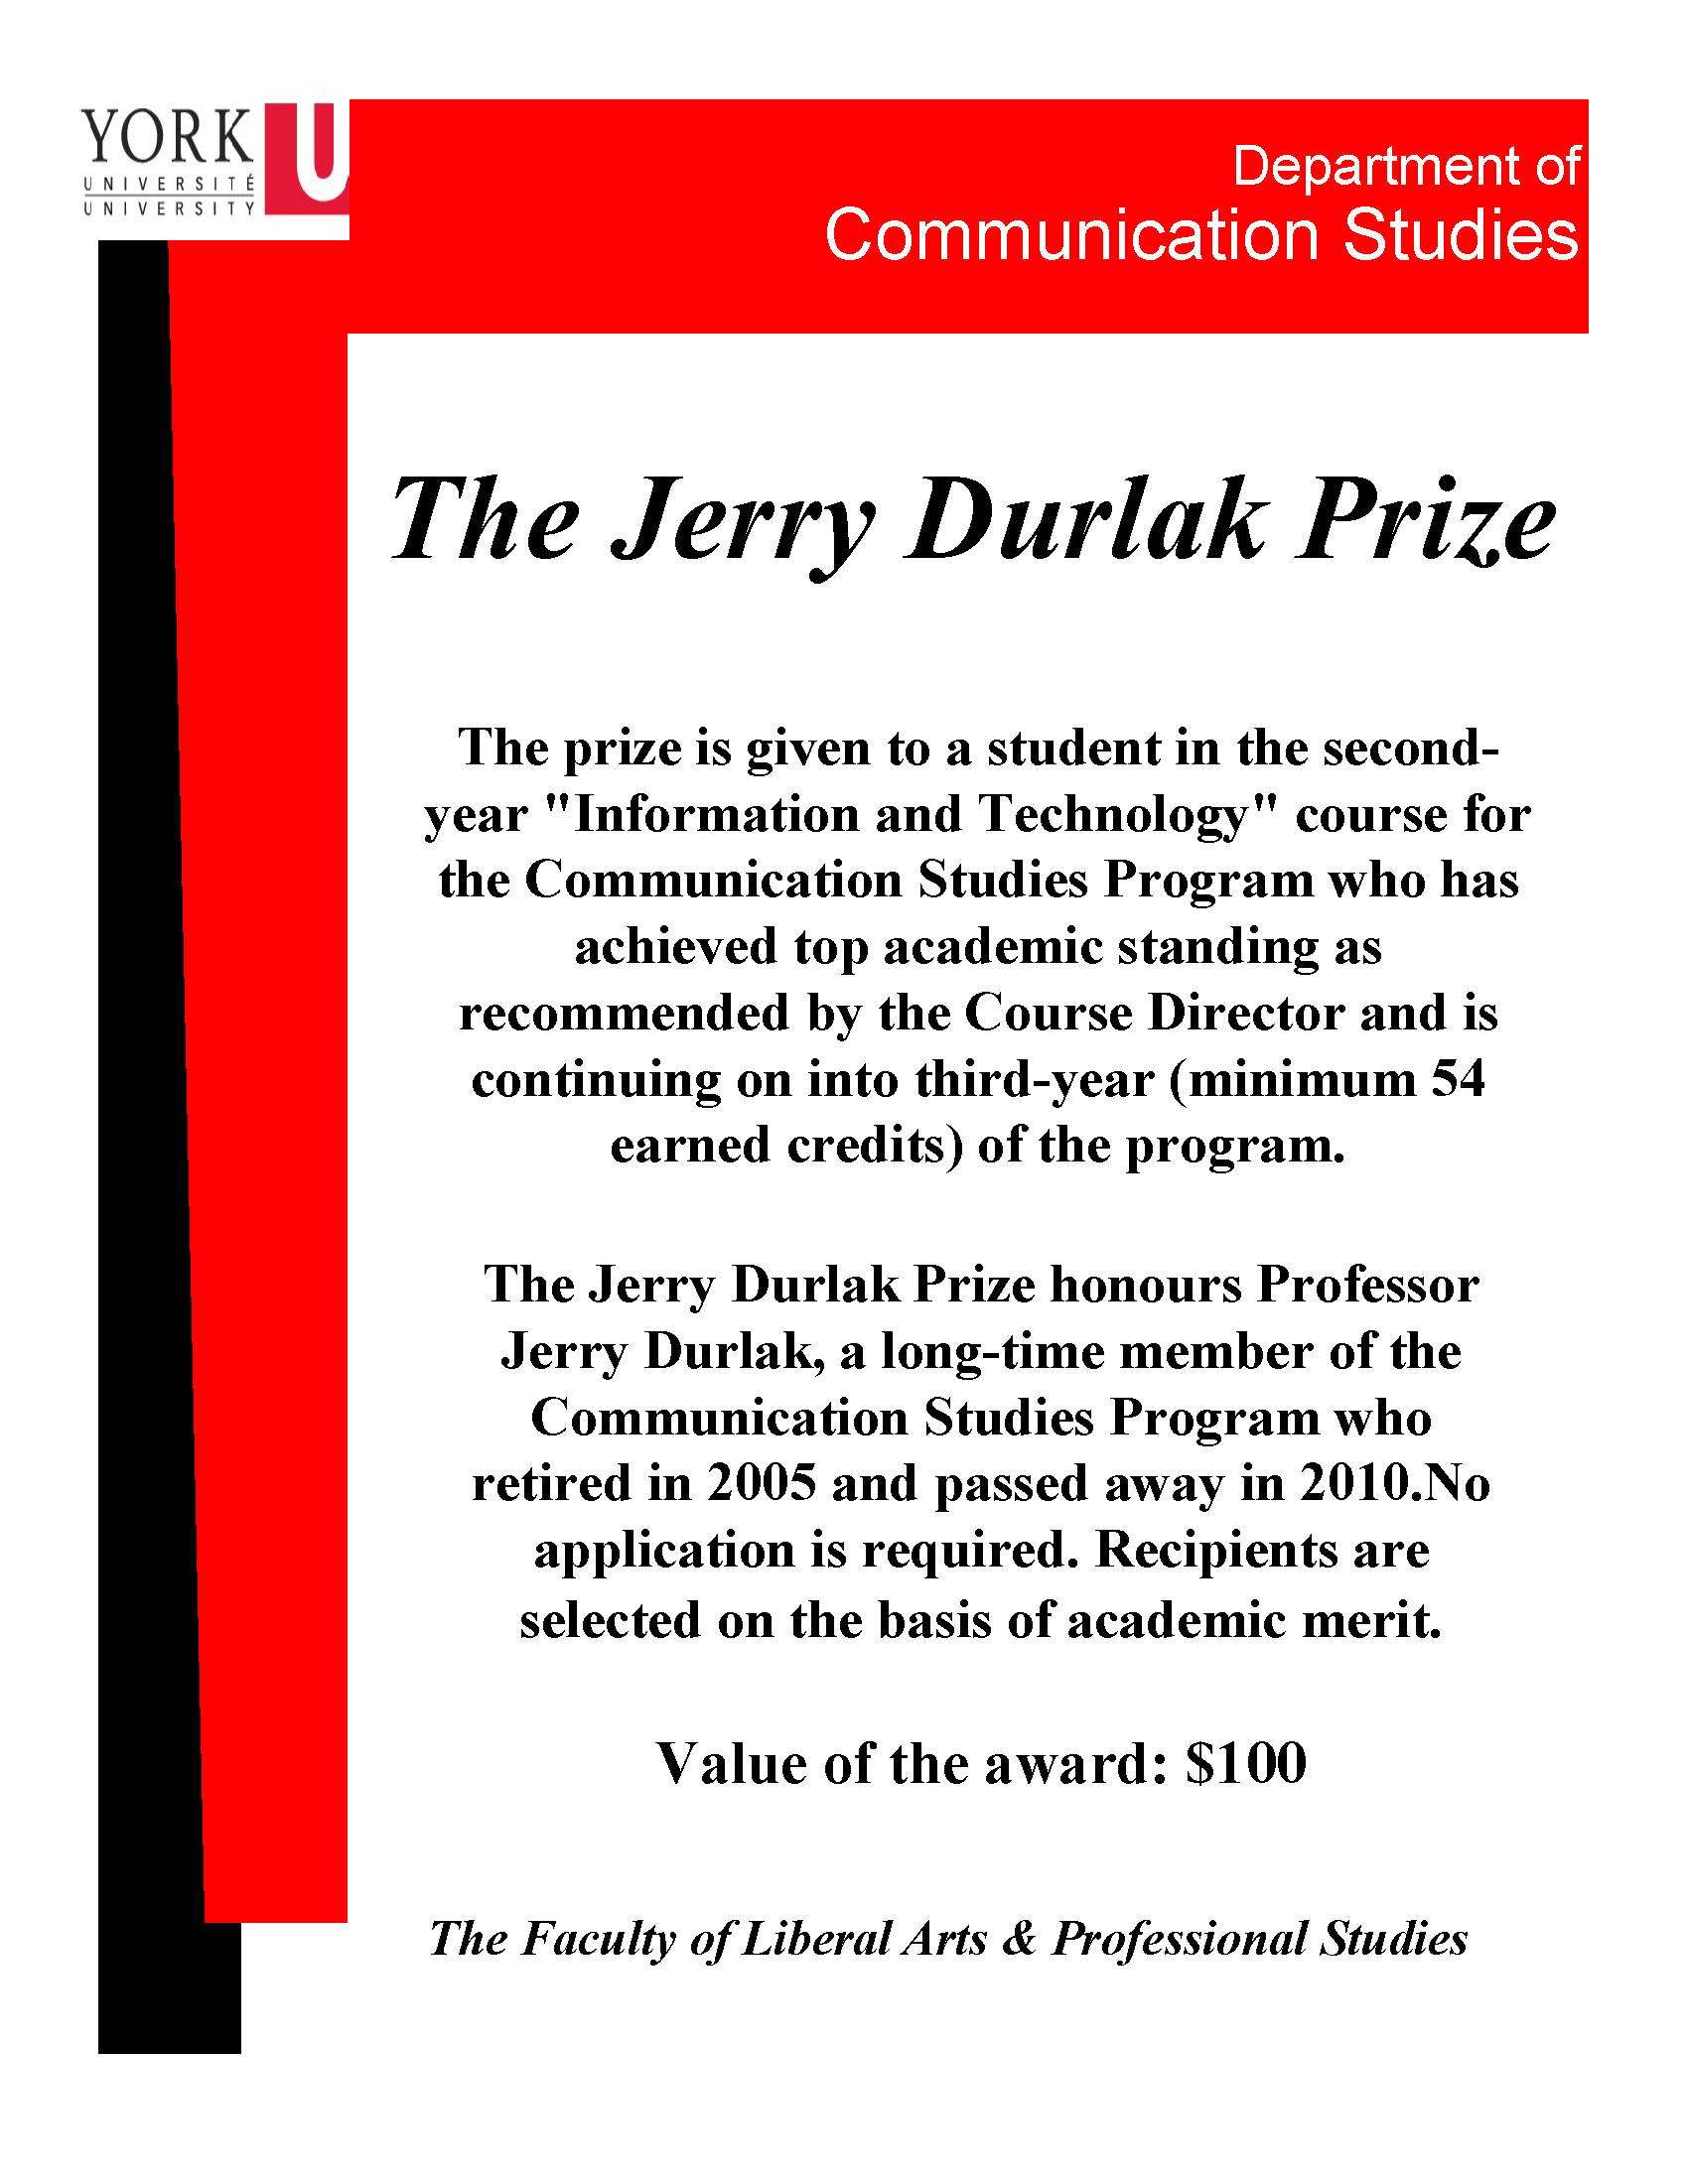 The Jerry Durlak Prize